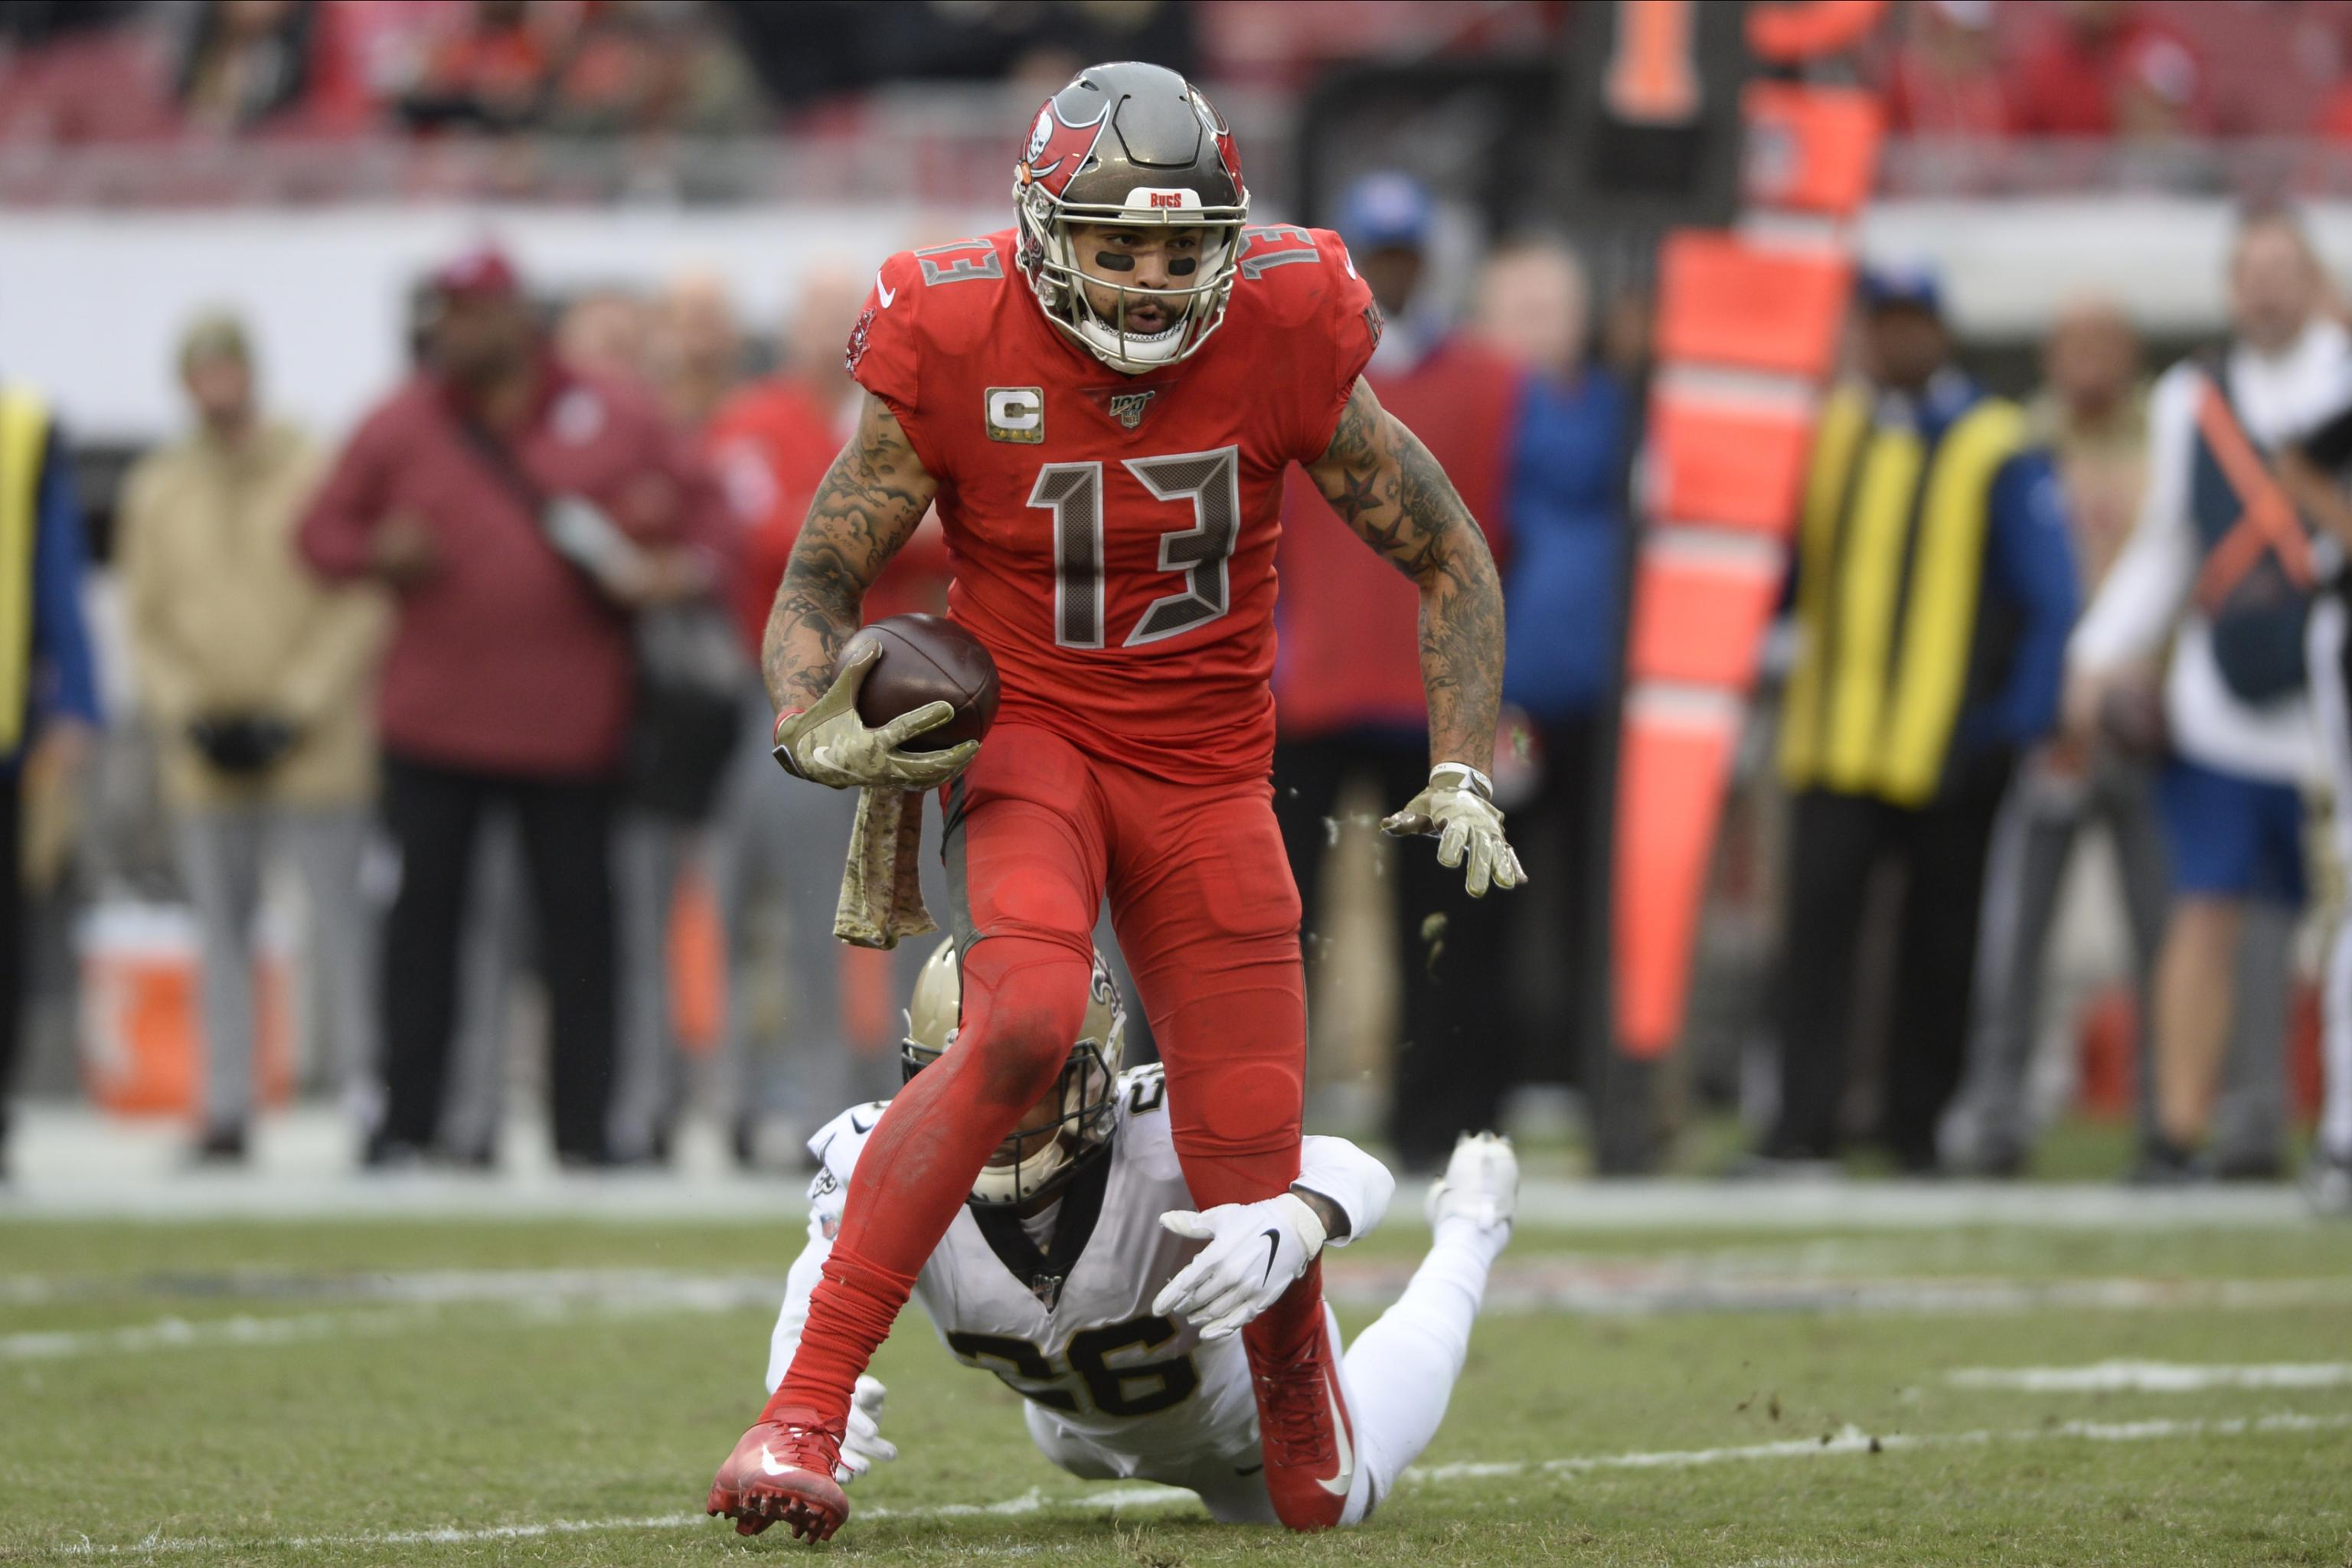 Mike Evans Responds To Keenan Allen Diss Be Realistic You Not On My Level Bro Bleacher Report Latest News Videos And Highlights